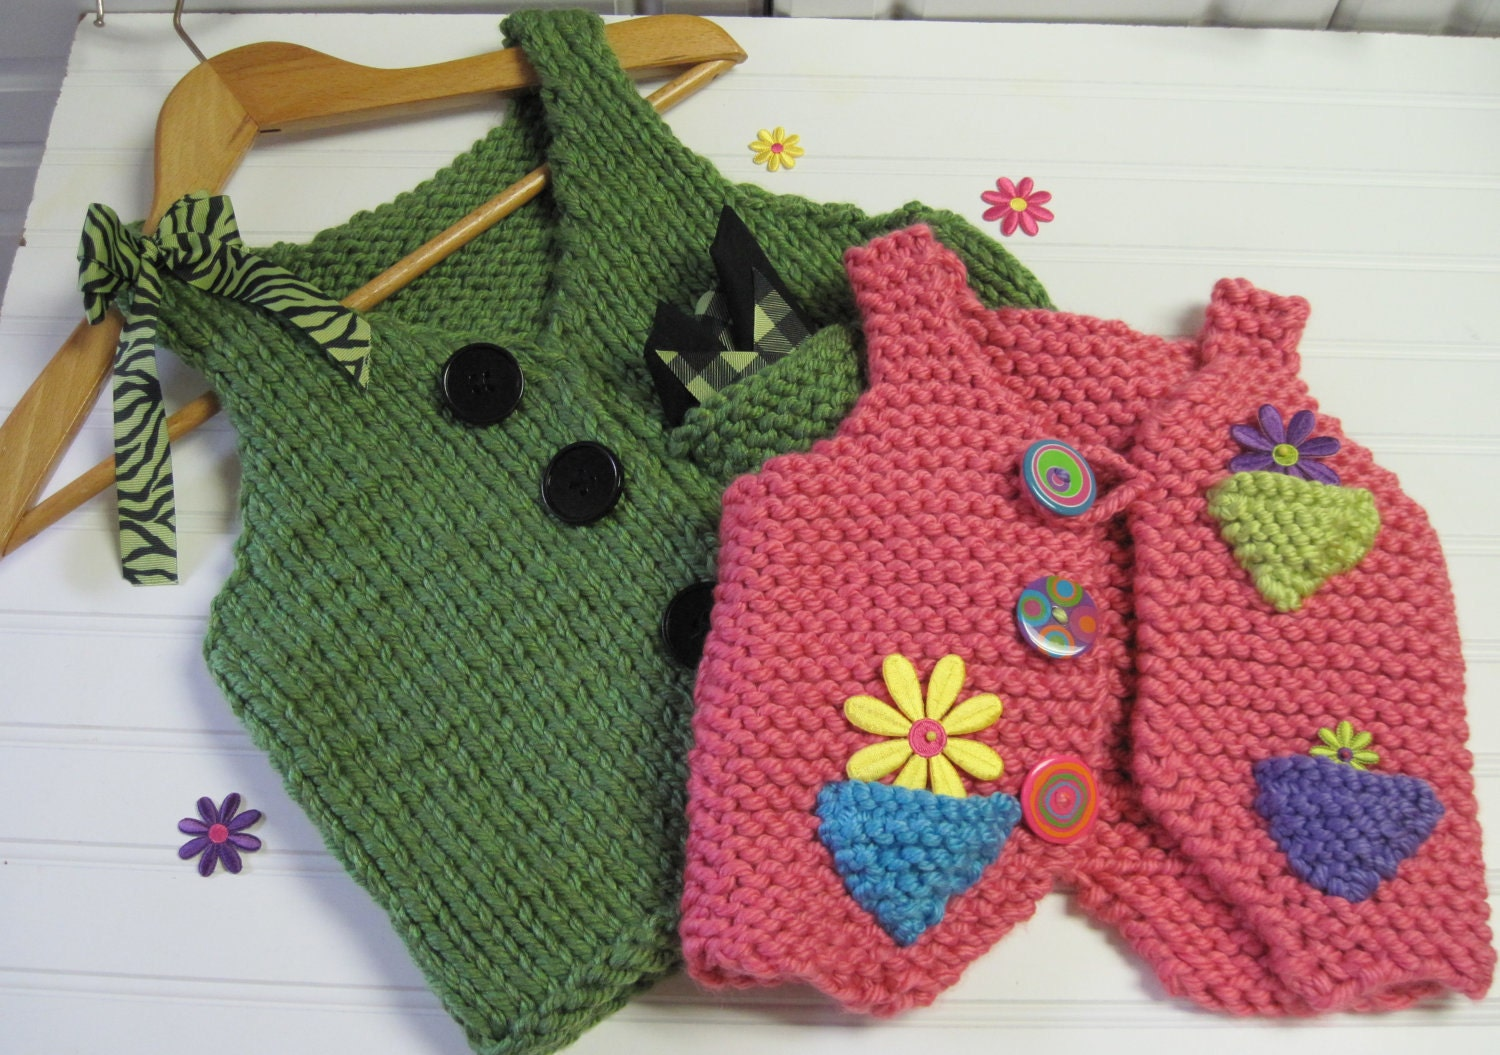 Knitting Pattern Vest Bulky Yarn : Pocket Points Childs Vest Bulky Yarn Knitting by LaurelArts